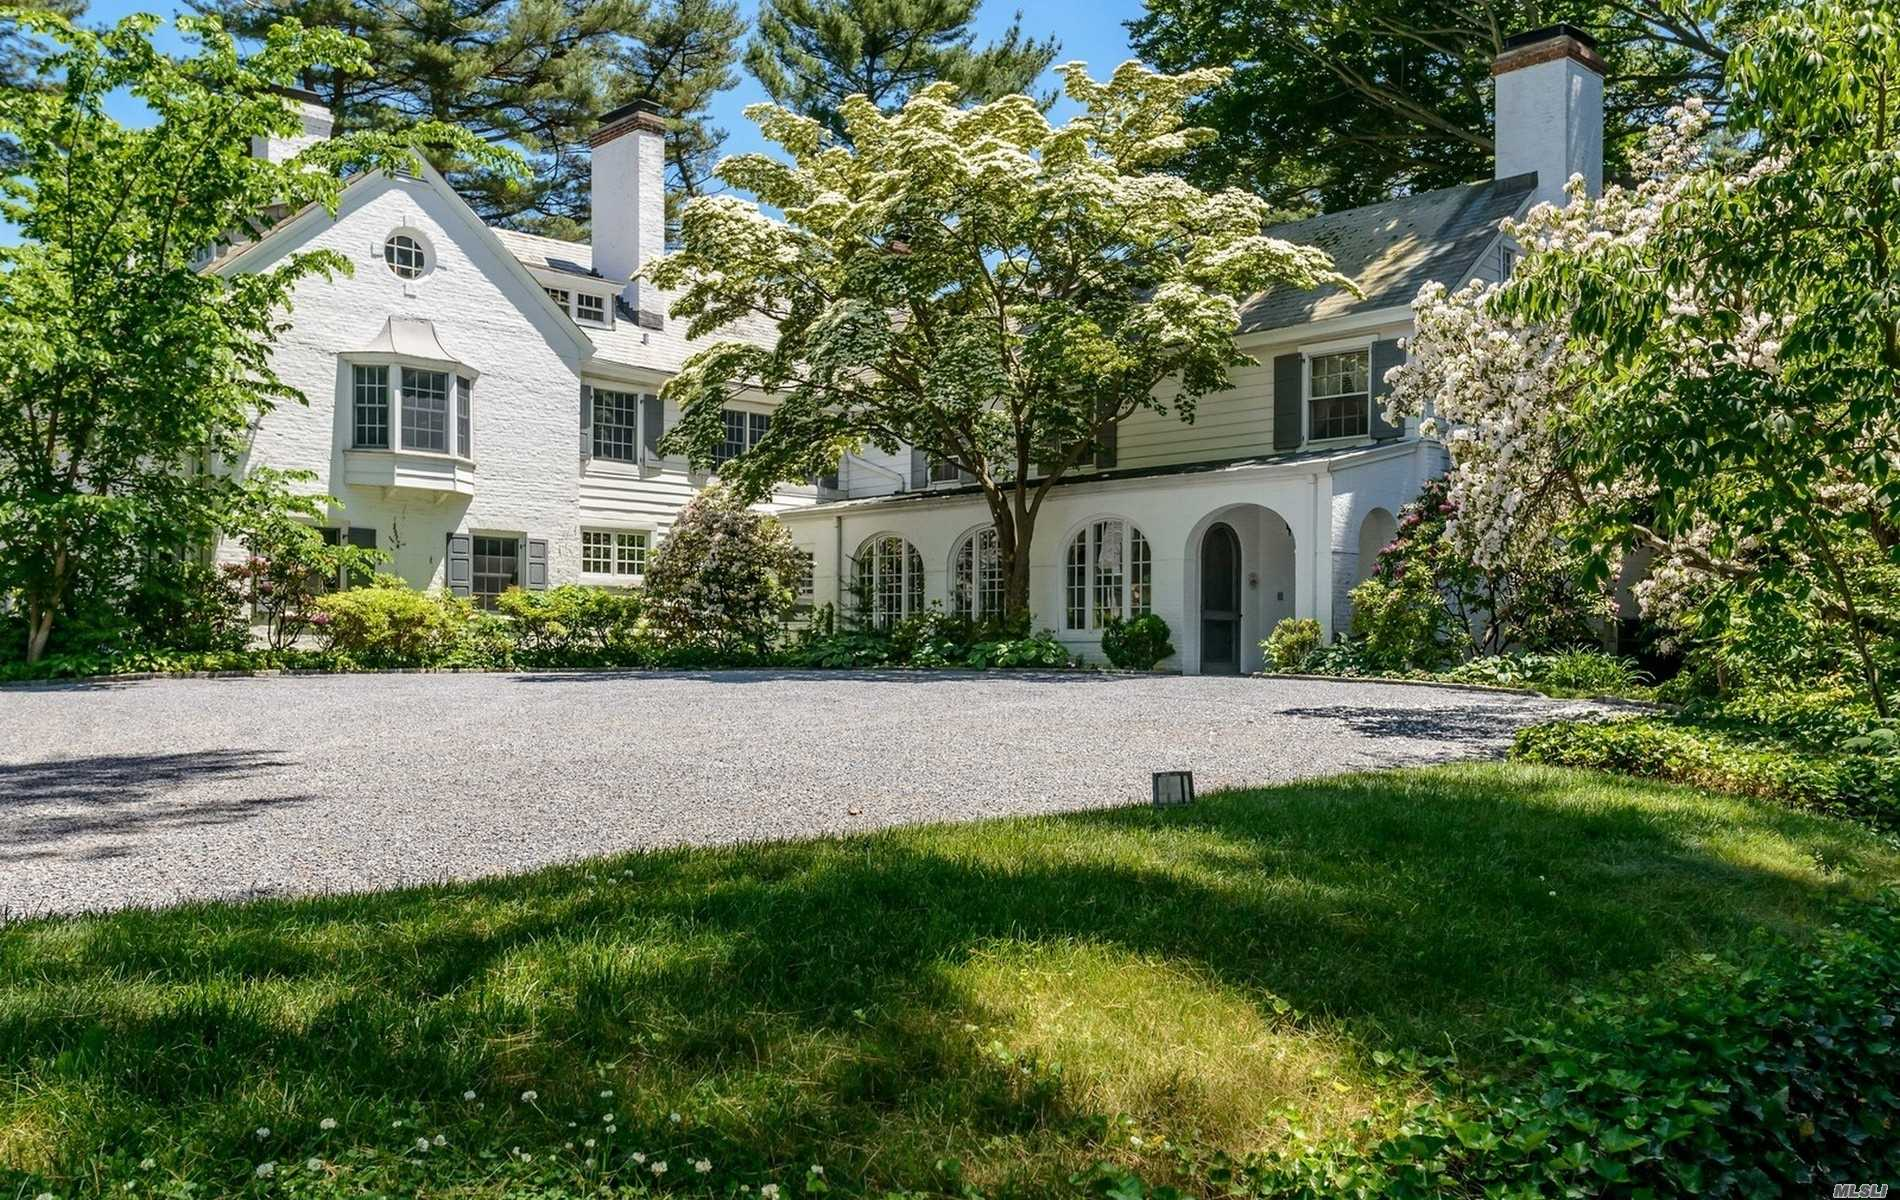 One-Of-A-Kind Magnificent 8650 Sqft Restored Gold Coast Estate Set On One Of The Finest Properties In Old Westbury. The 5.59 Glorious Acres In Jericho Sd Offer Captivating Vistas. Also Available For Rent-$4000: A 2-Story 3000Sqft Bldg That Holds A Sports Complex/Entertainment Center That Contains An Incredible Indoor Basketball Court/Den/Gym/Gourmet Kitchen.Pool & Cabana.